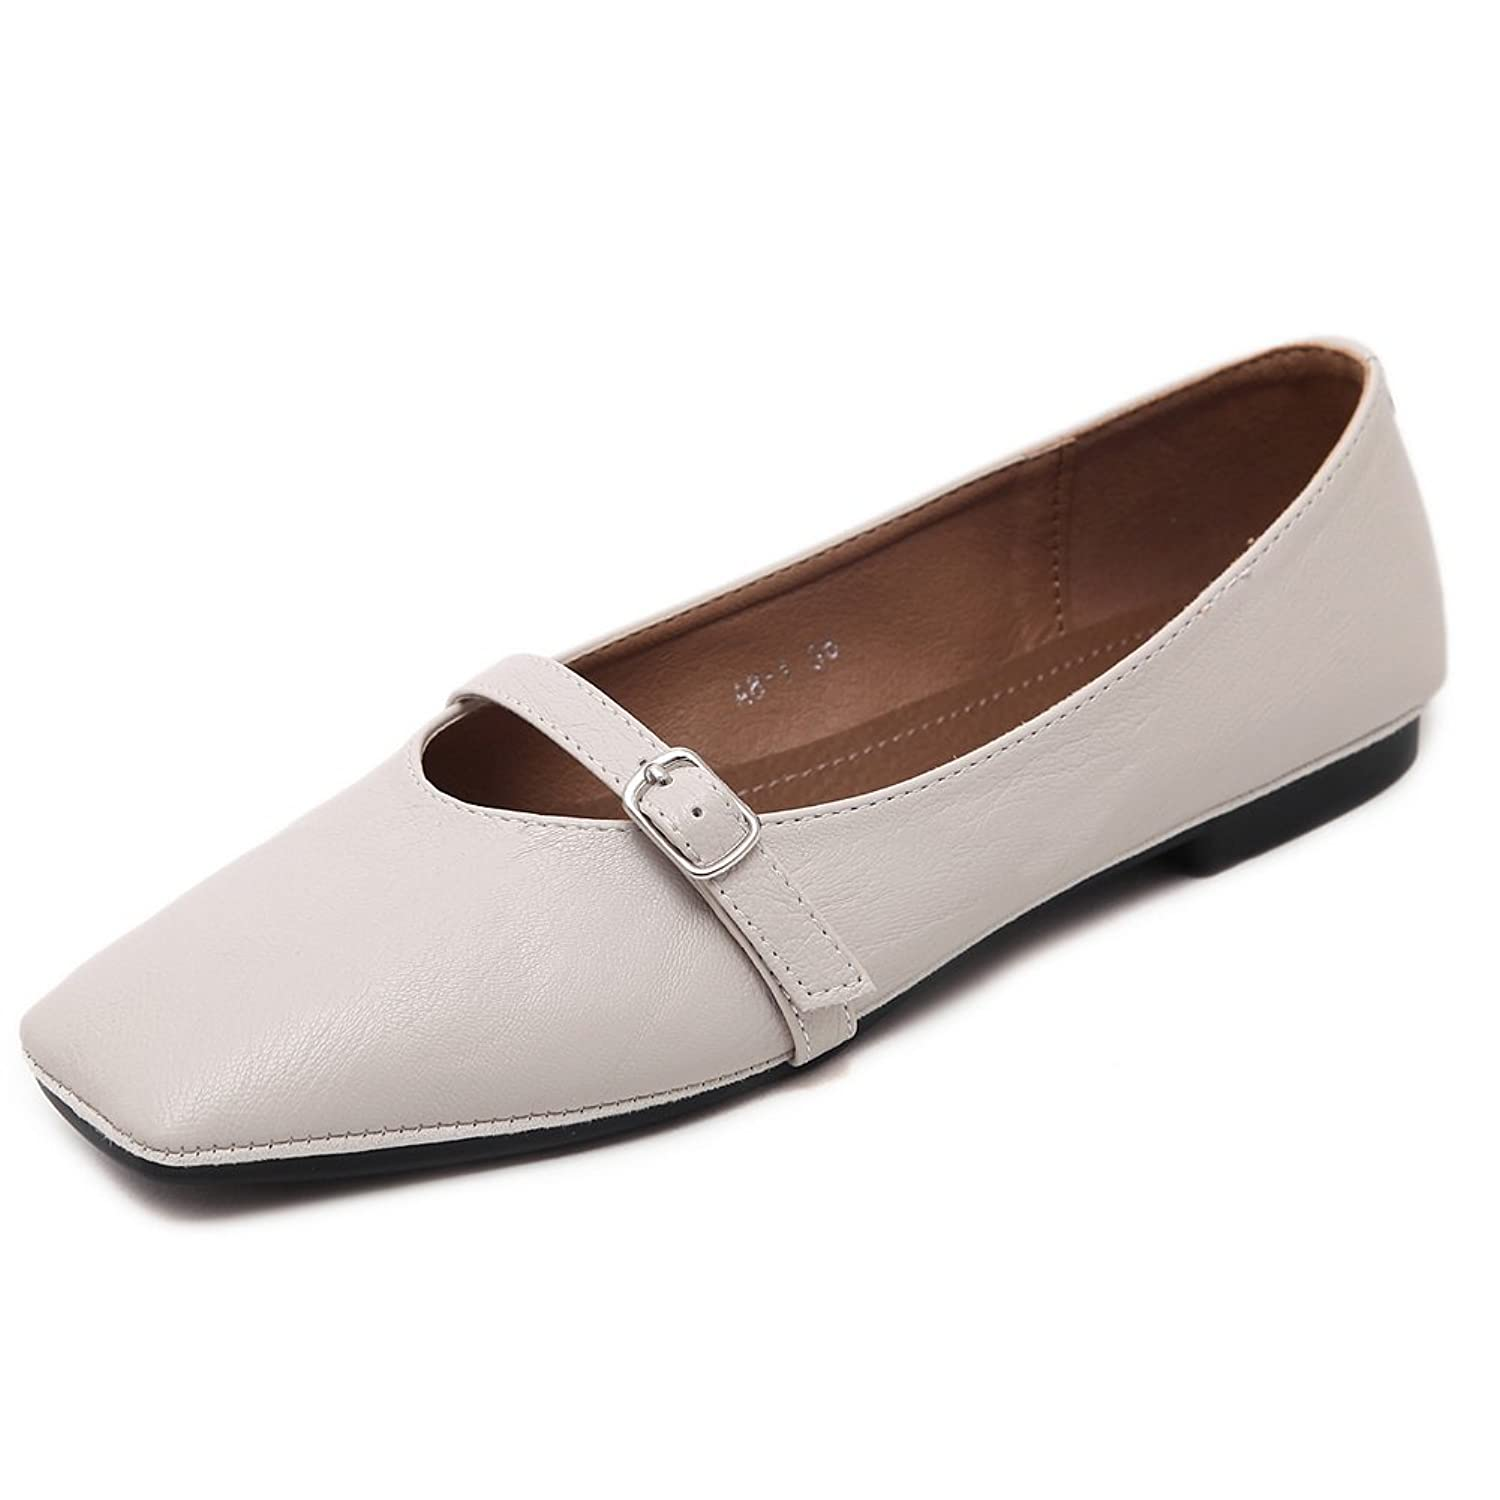 AdeeSu Womens Buckle Low-Cut Uppers Square-Toe Urethane Flats Shoes